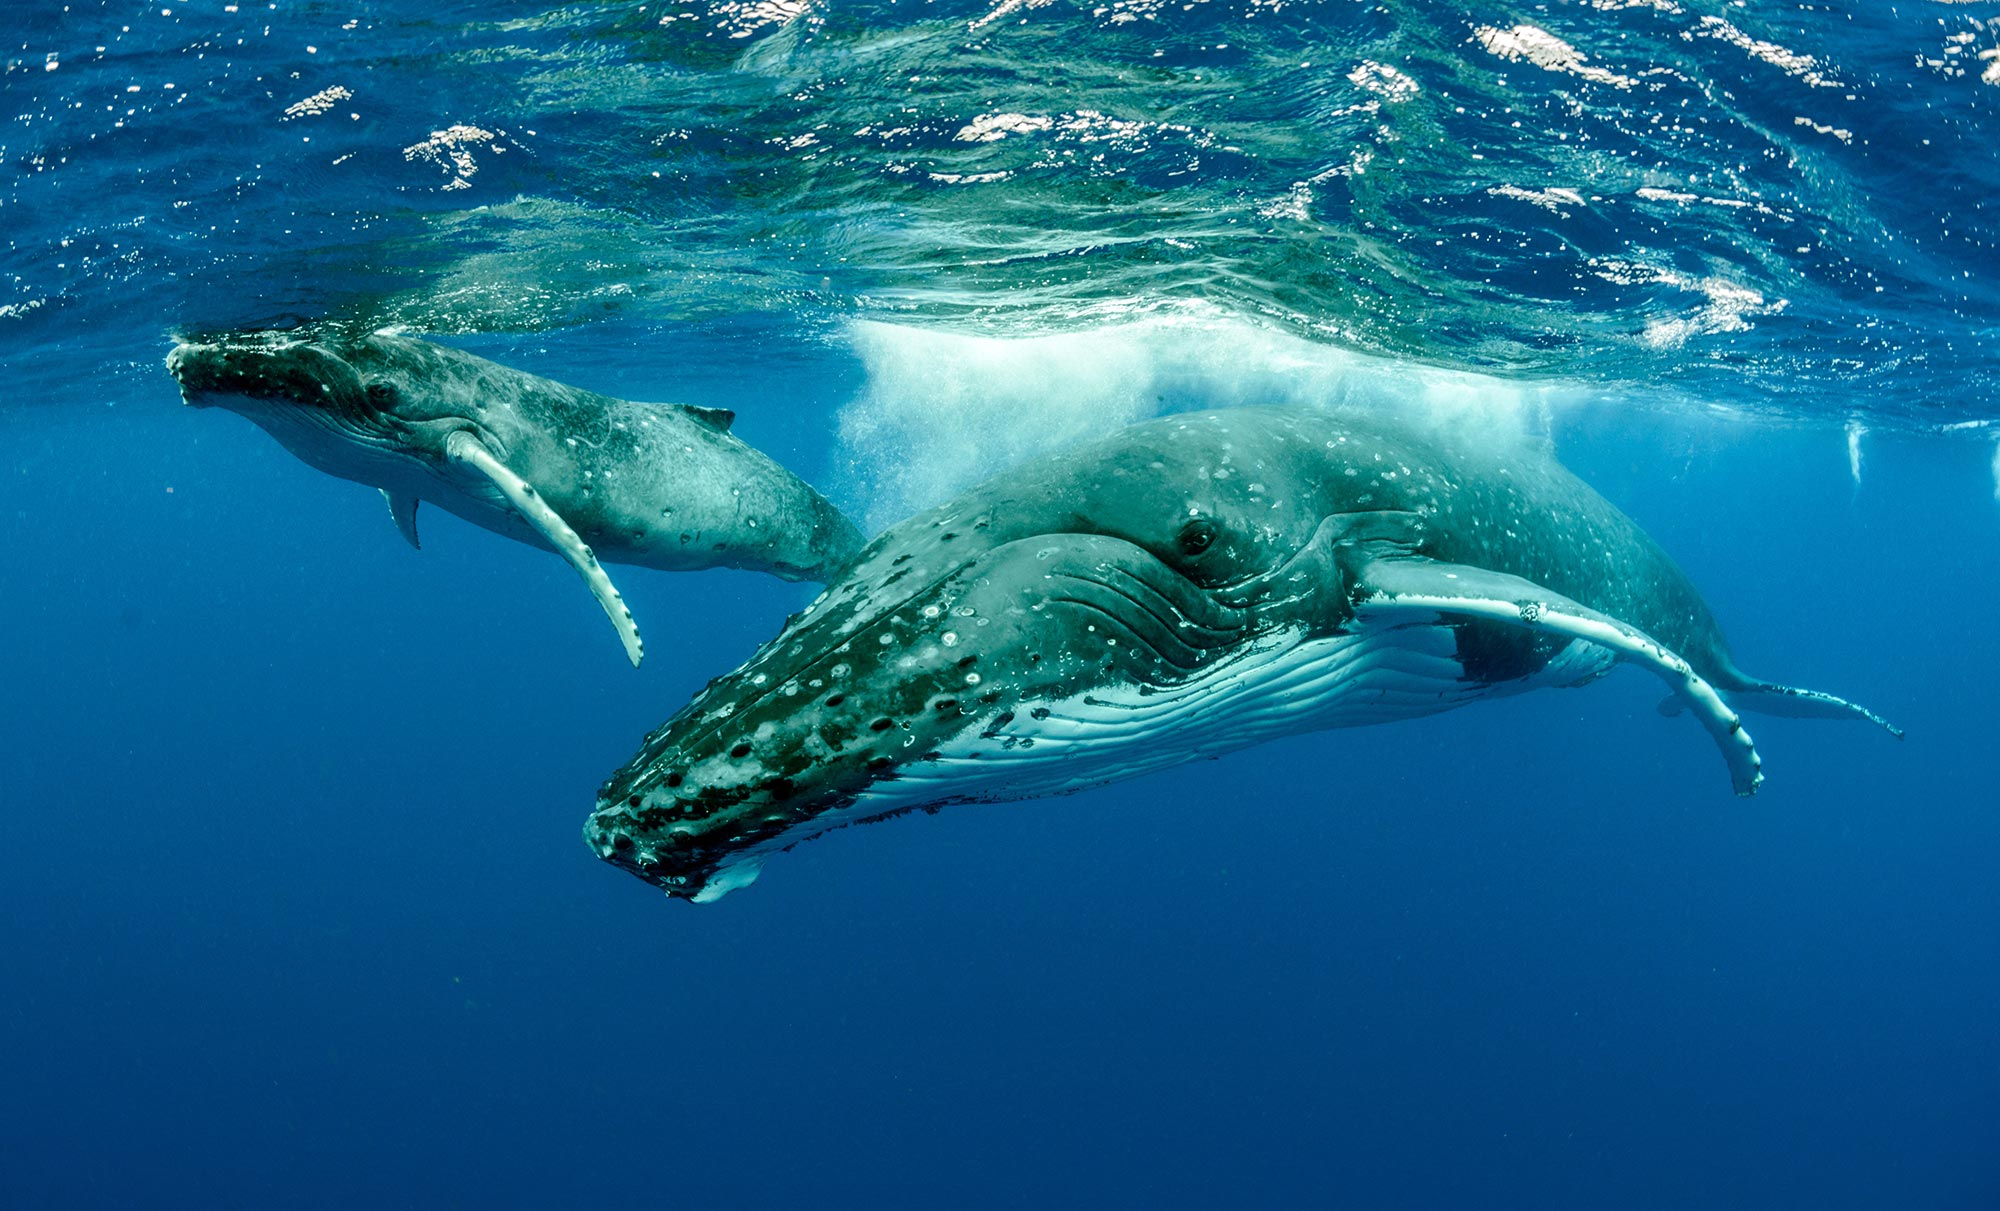 Recovering From The Brink Of Extinction Humpback Whale Population Rises Faster Than Expected